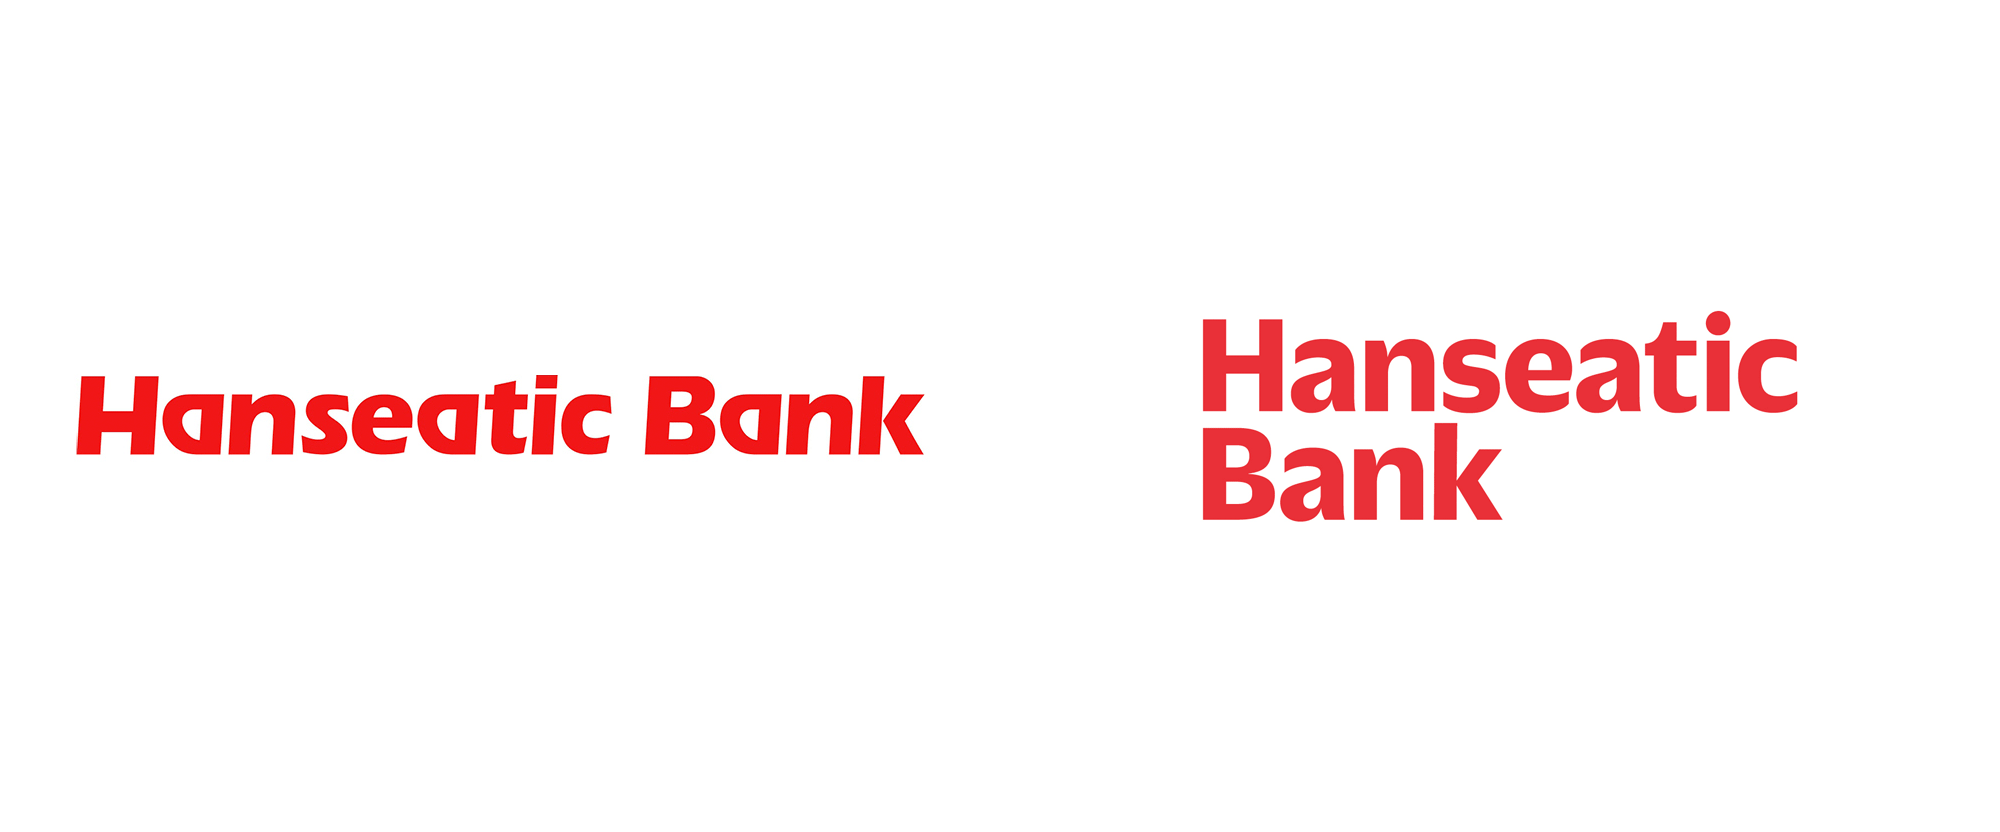 New Logo and Identity for Hanseatic Bank by EIGA Design